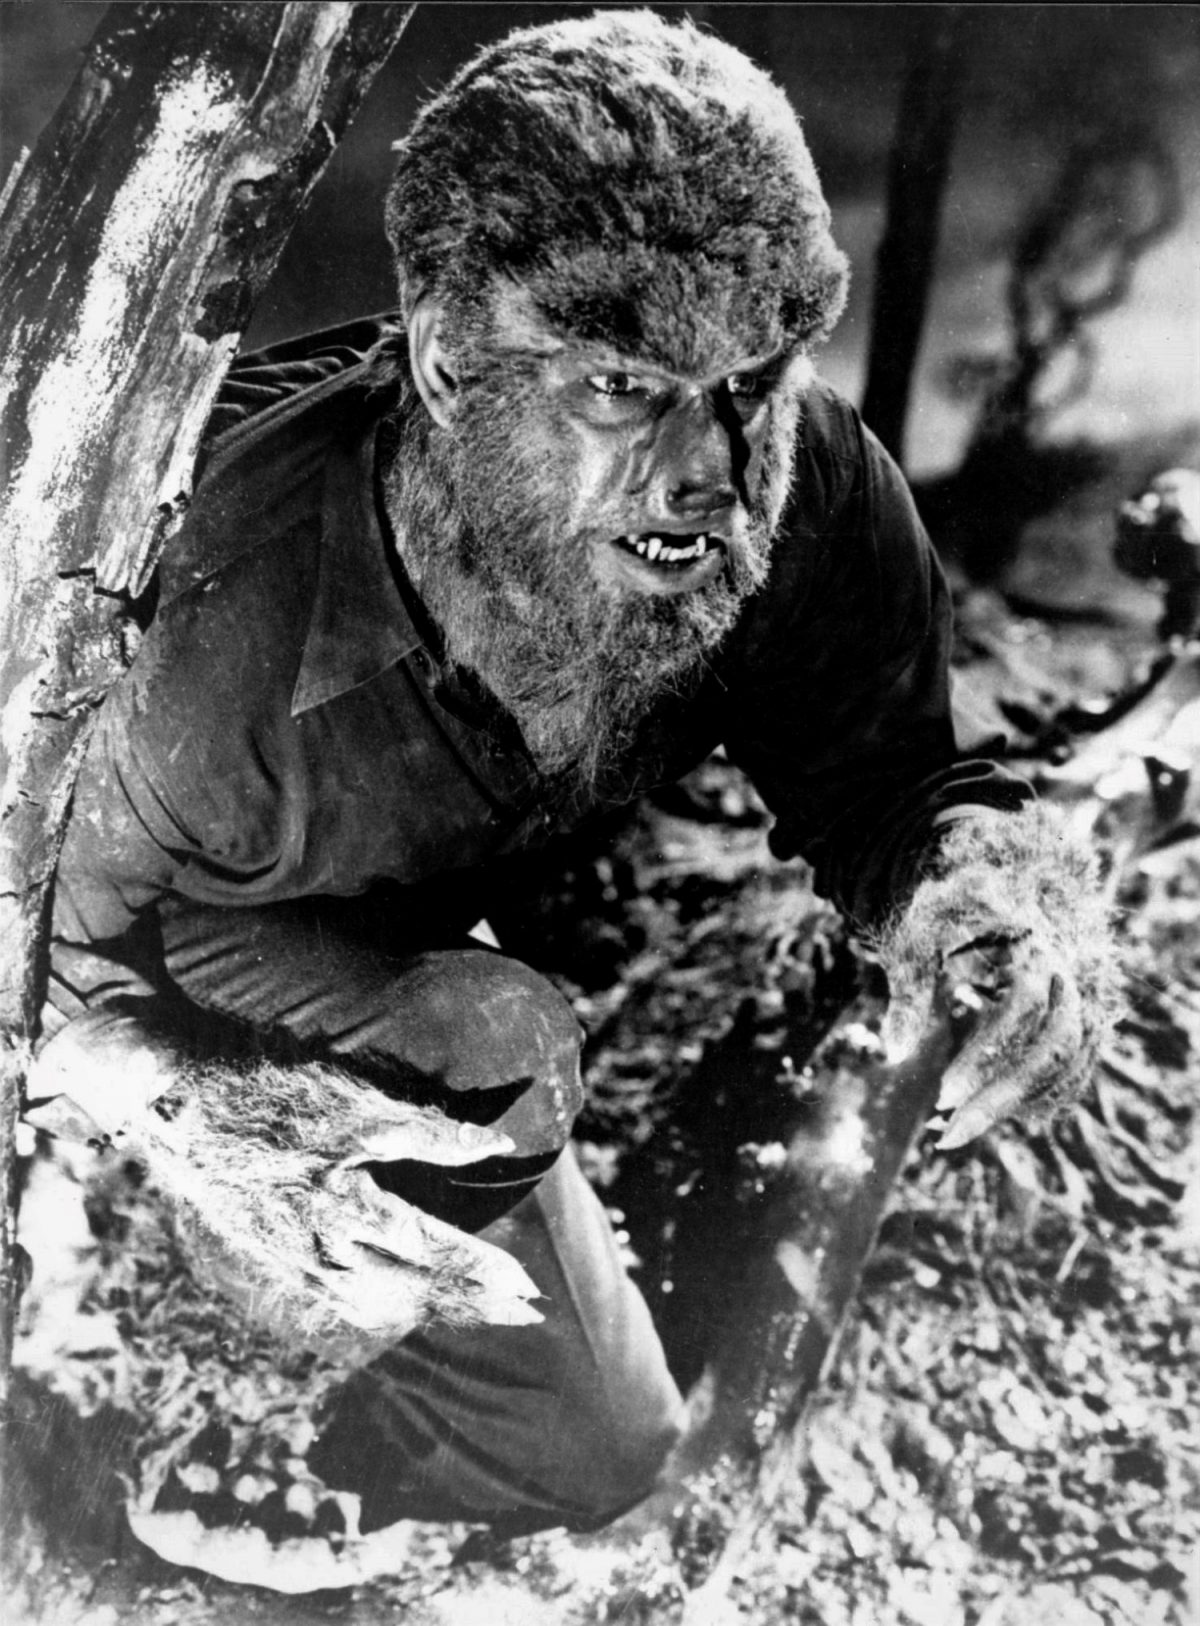 Wolfman, Lon Chaney, werewolf, horror, film